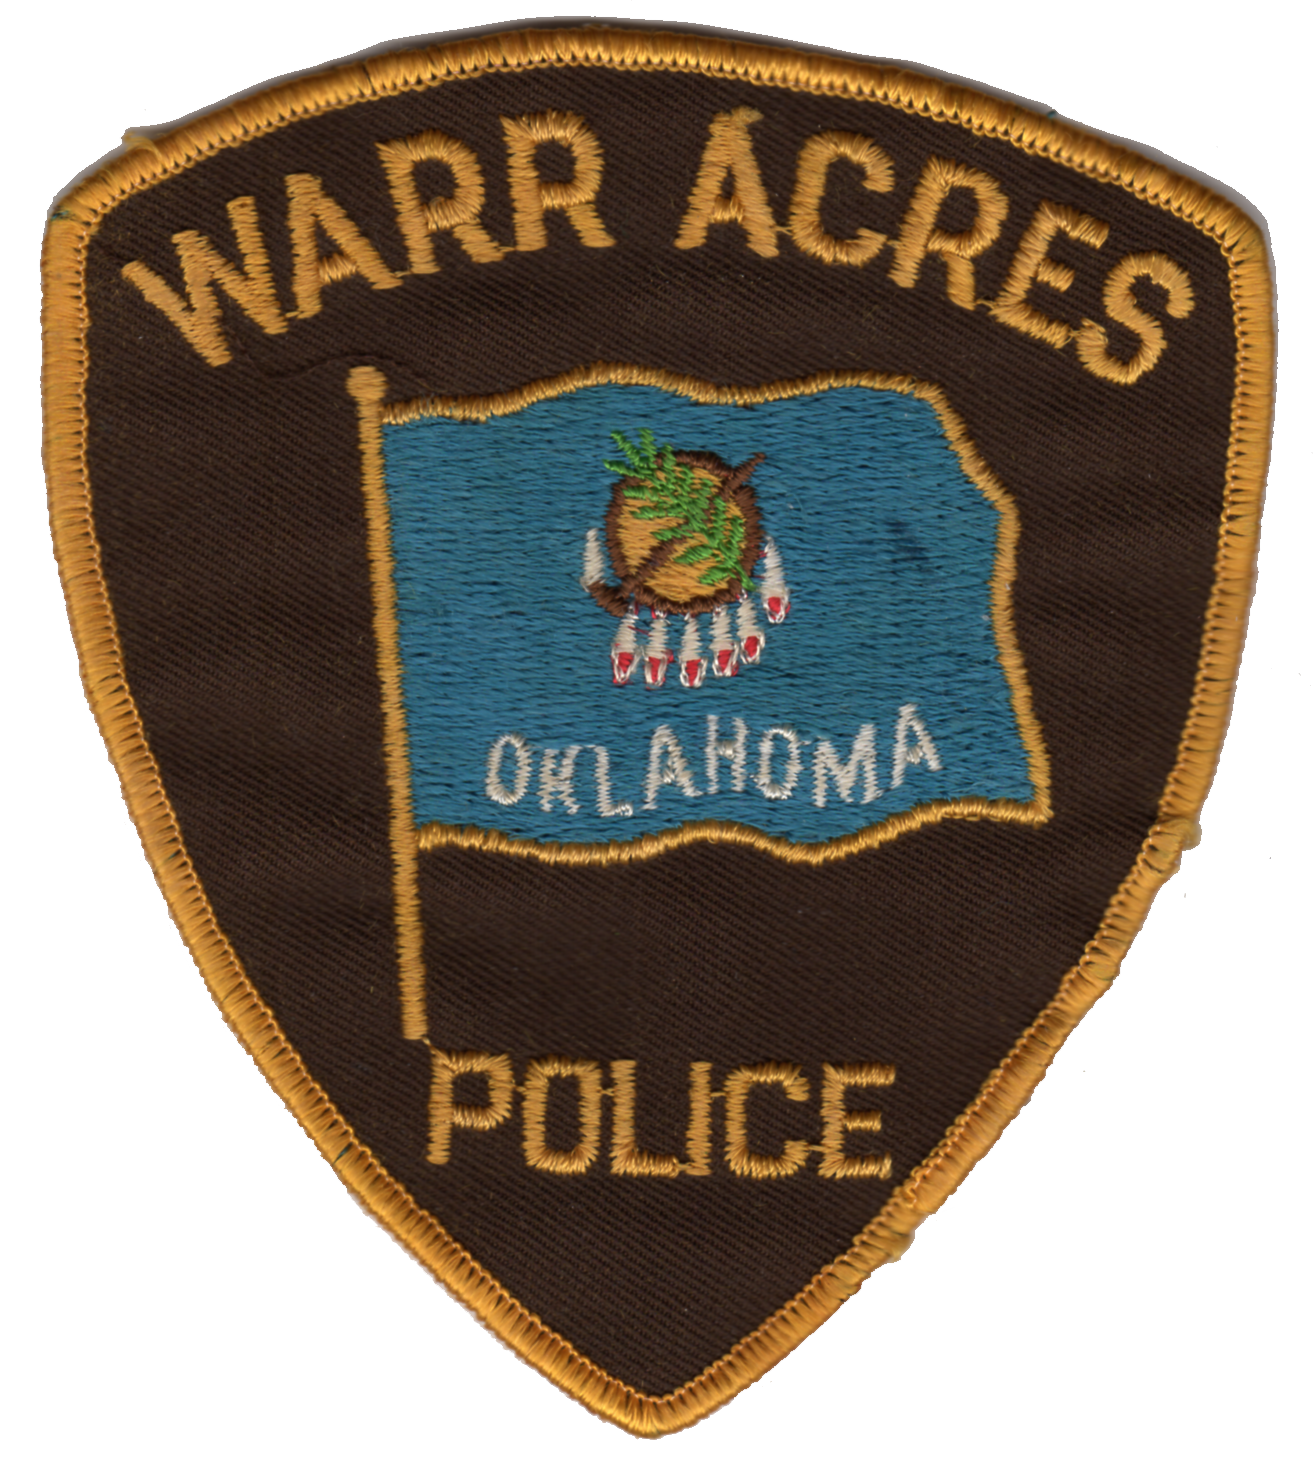 WAPD Patch with OK flag